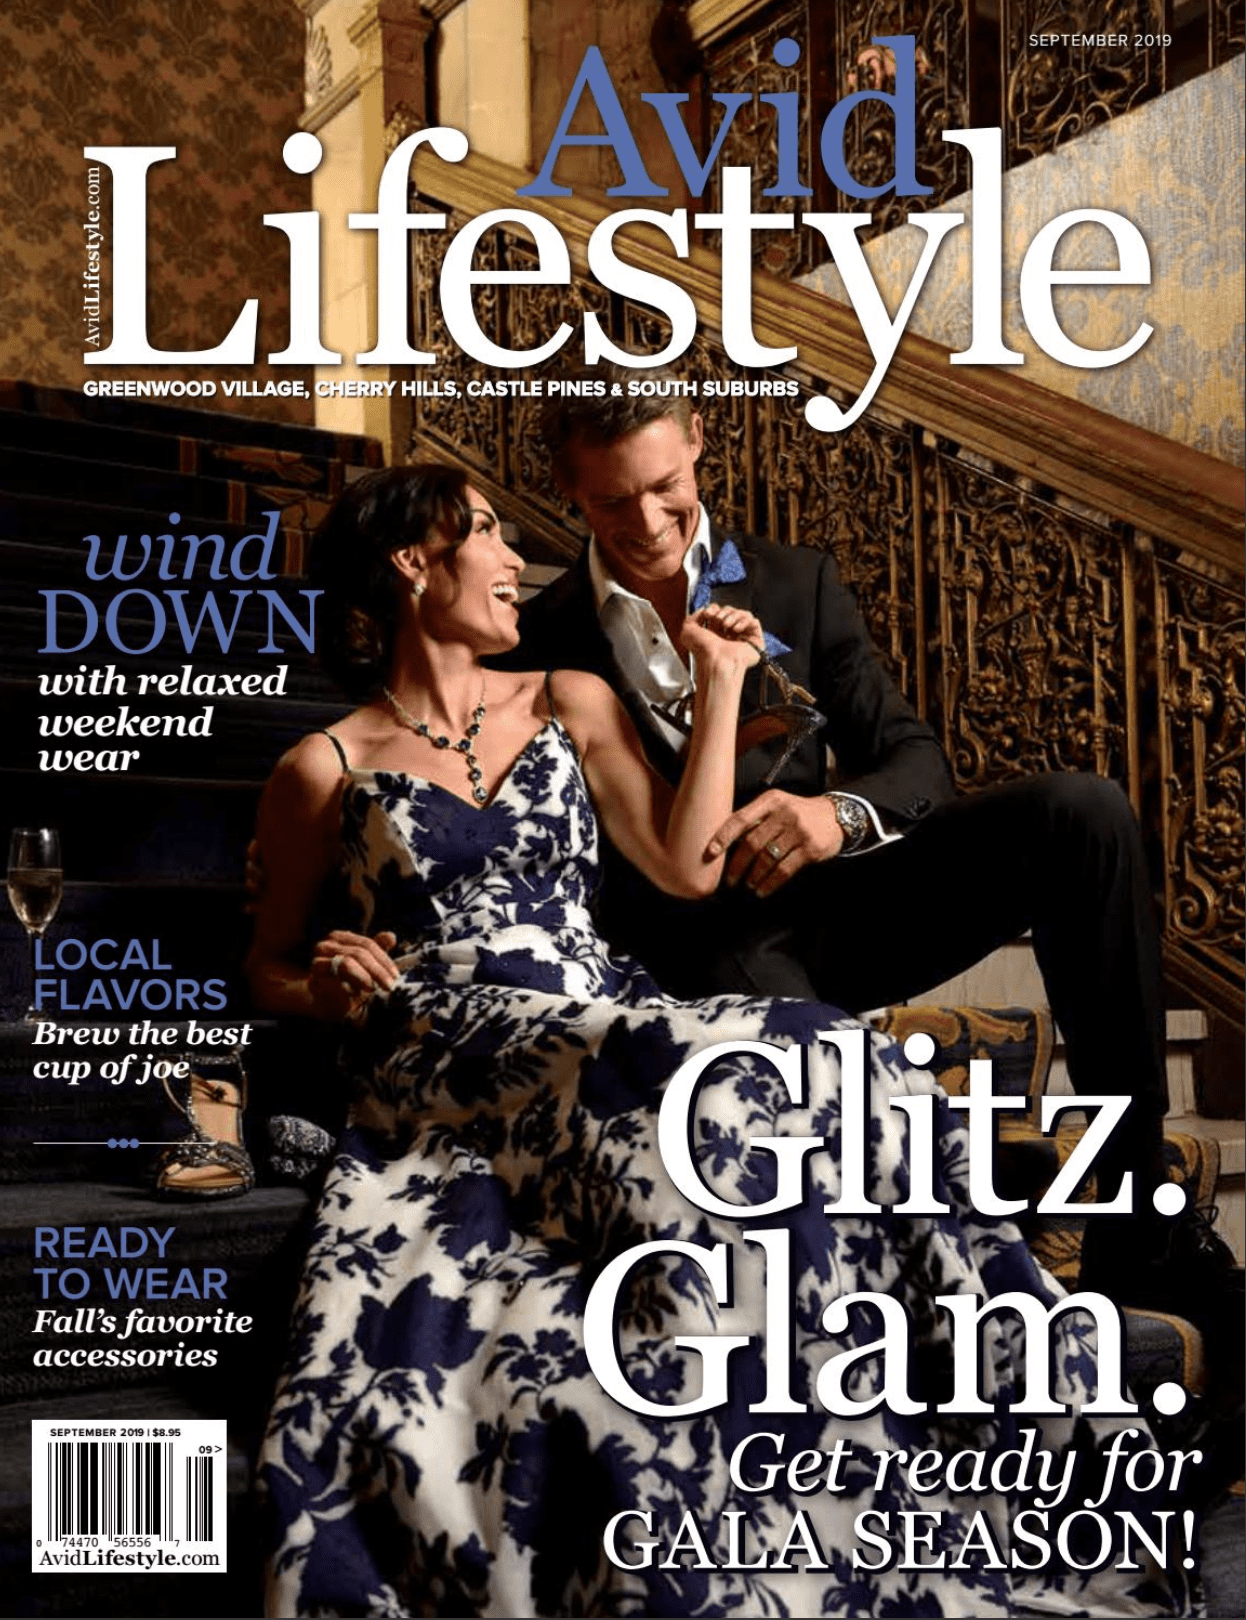 Cover photo for Avid Lifestyle magazine. Dark haired couple dressed in Gala ball gown and tuxedo